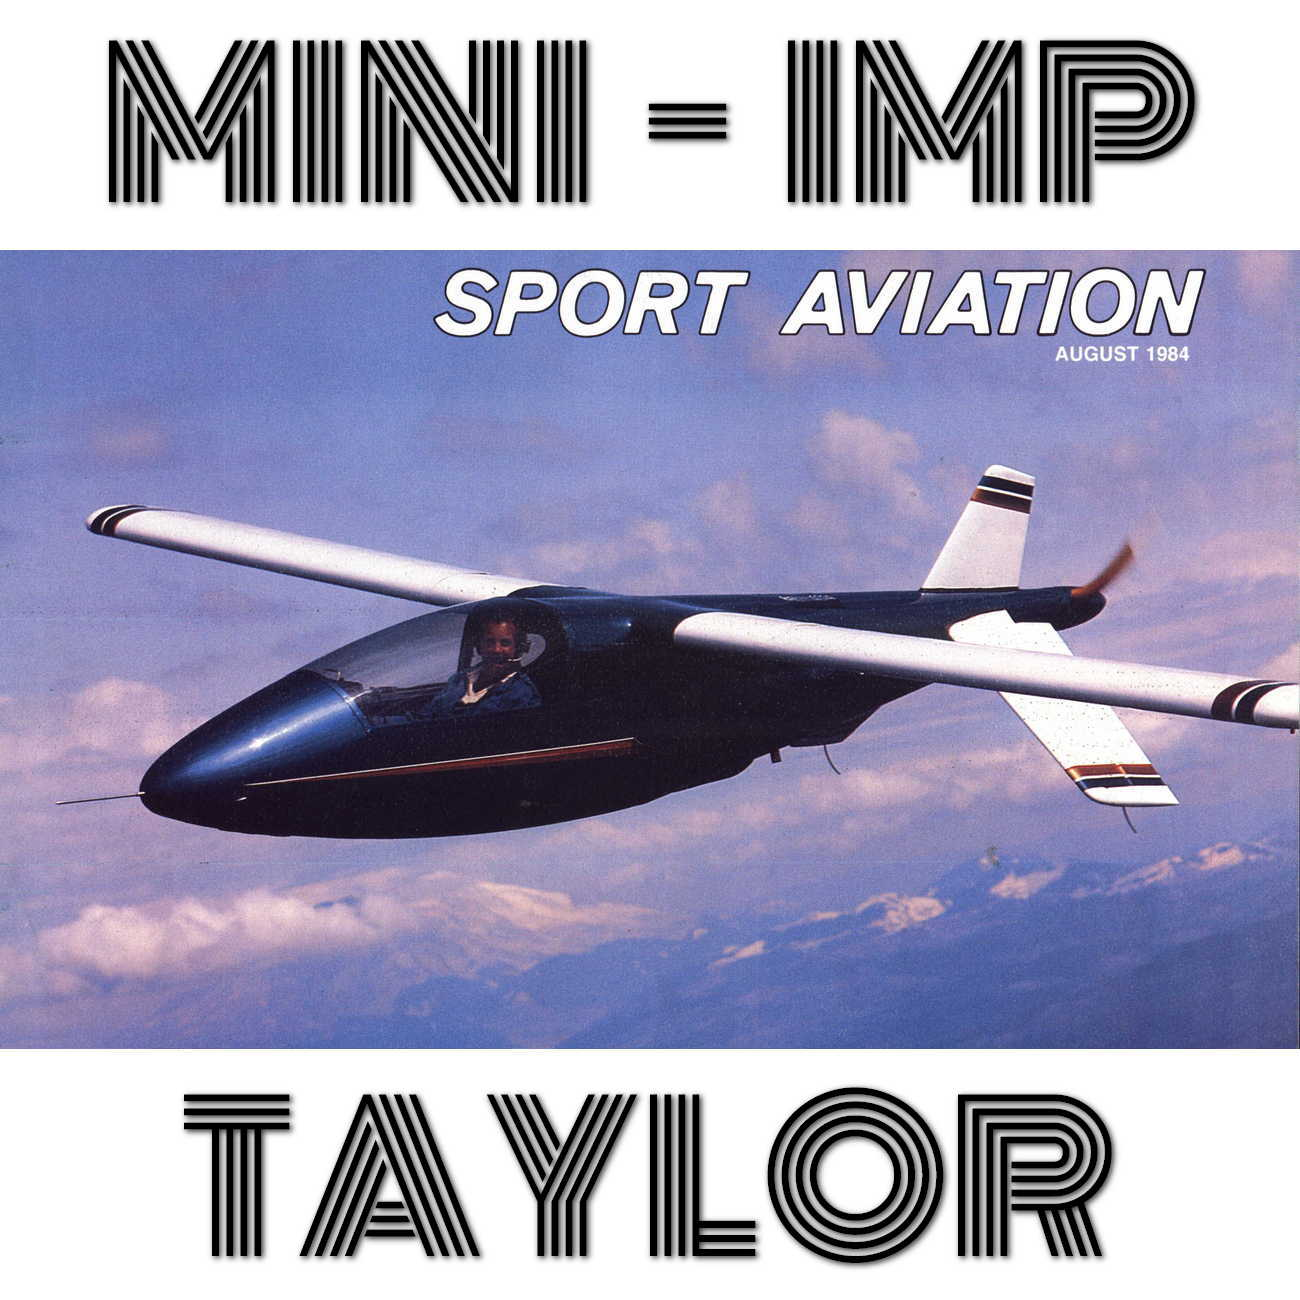 MINI-IMP TAYLOR AEROCAR – PLANS AND INFORMATION SET FOR HOMEBUILD ONE SEAT  VERY HIGH SPEED PUSHER AIRCRAFT WITH ANY ENGINE FROM 60 TO 115HP (60-hp